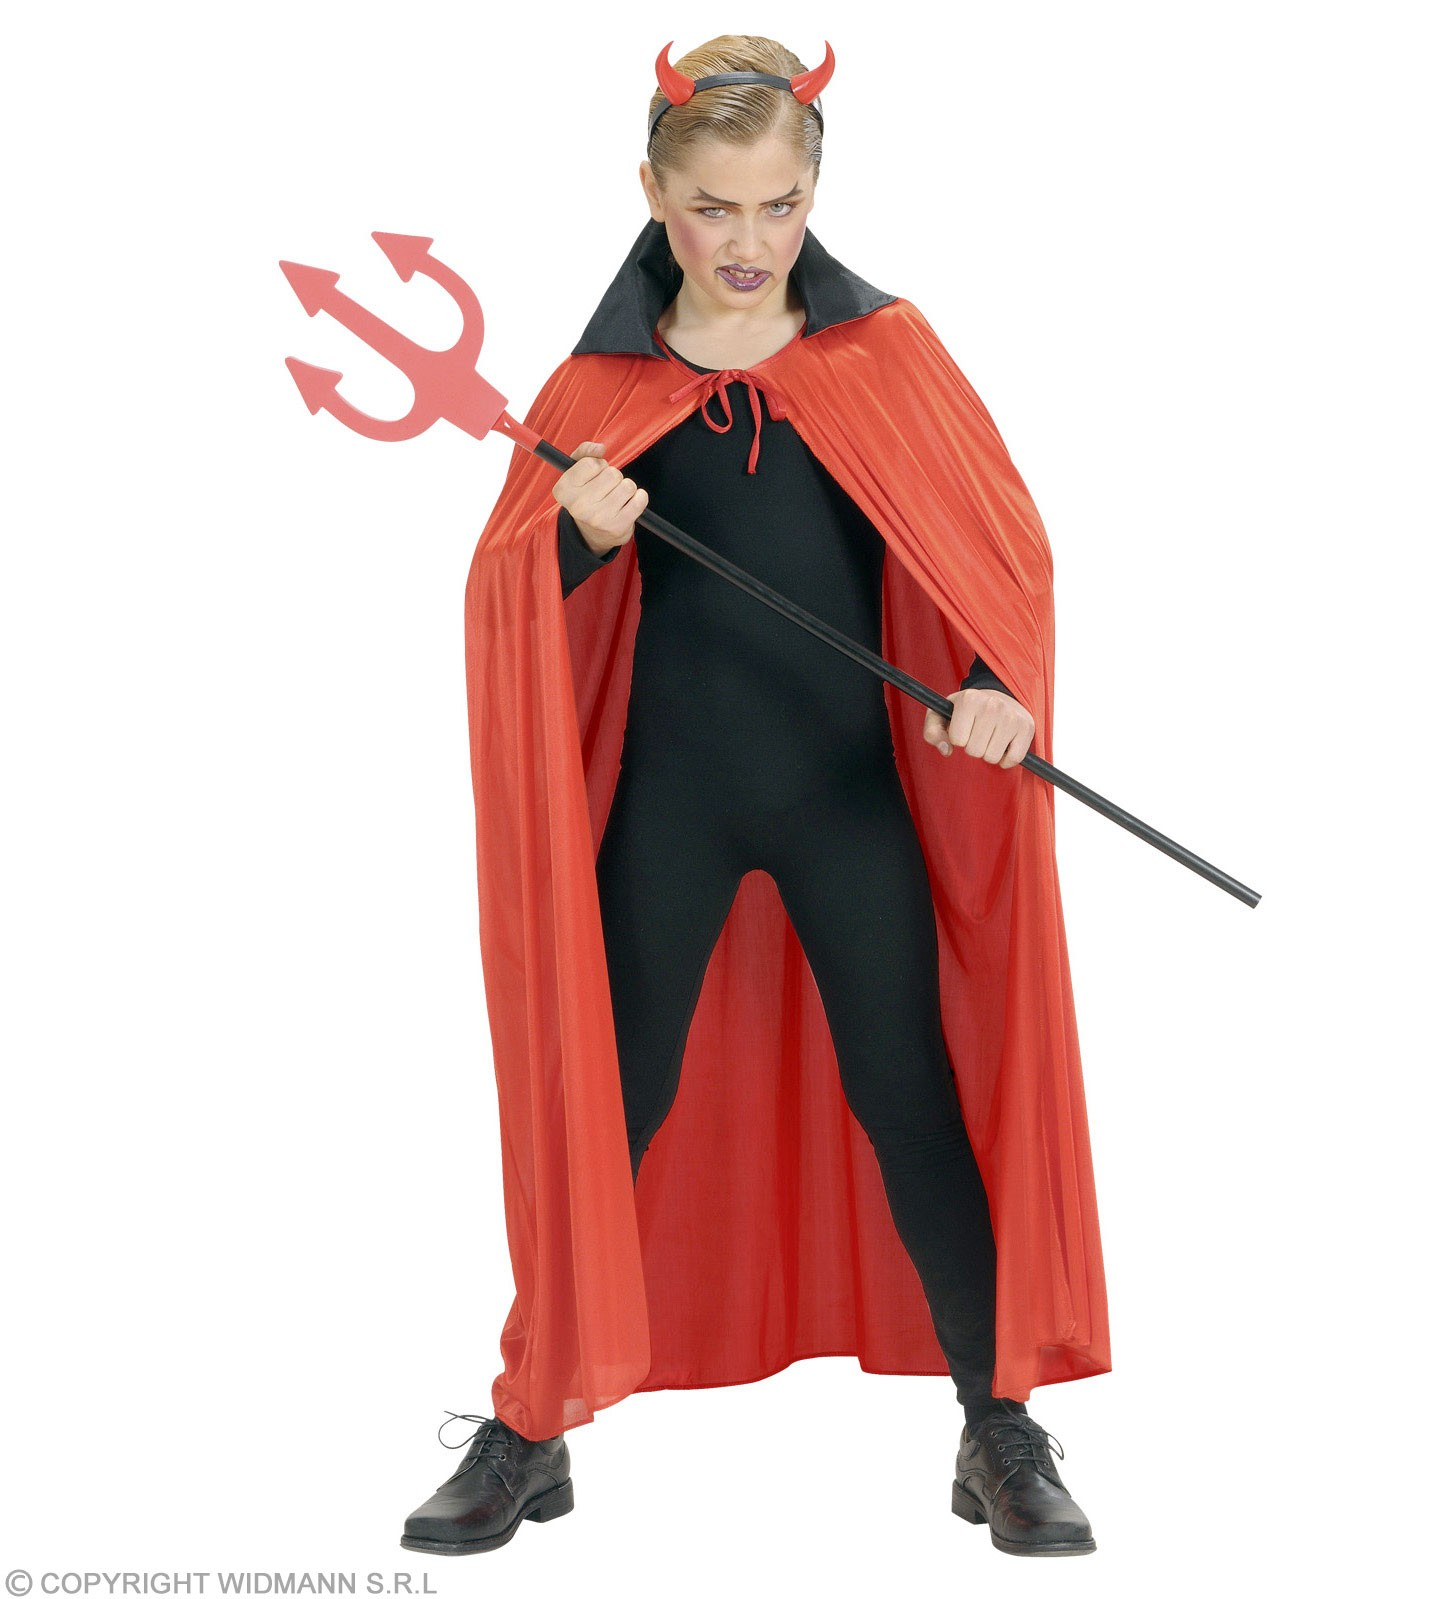 Red Cape W/Black Collar Child 110Cm - Fancy Dress Girls (Halloween)